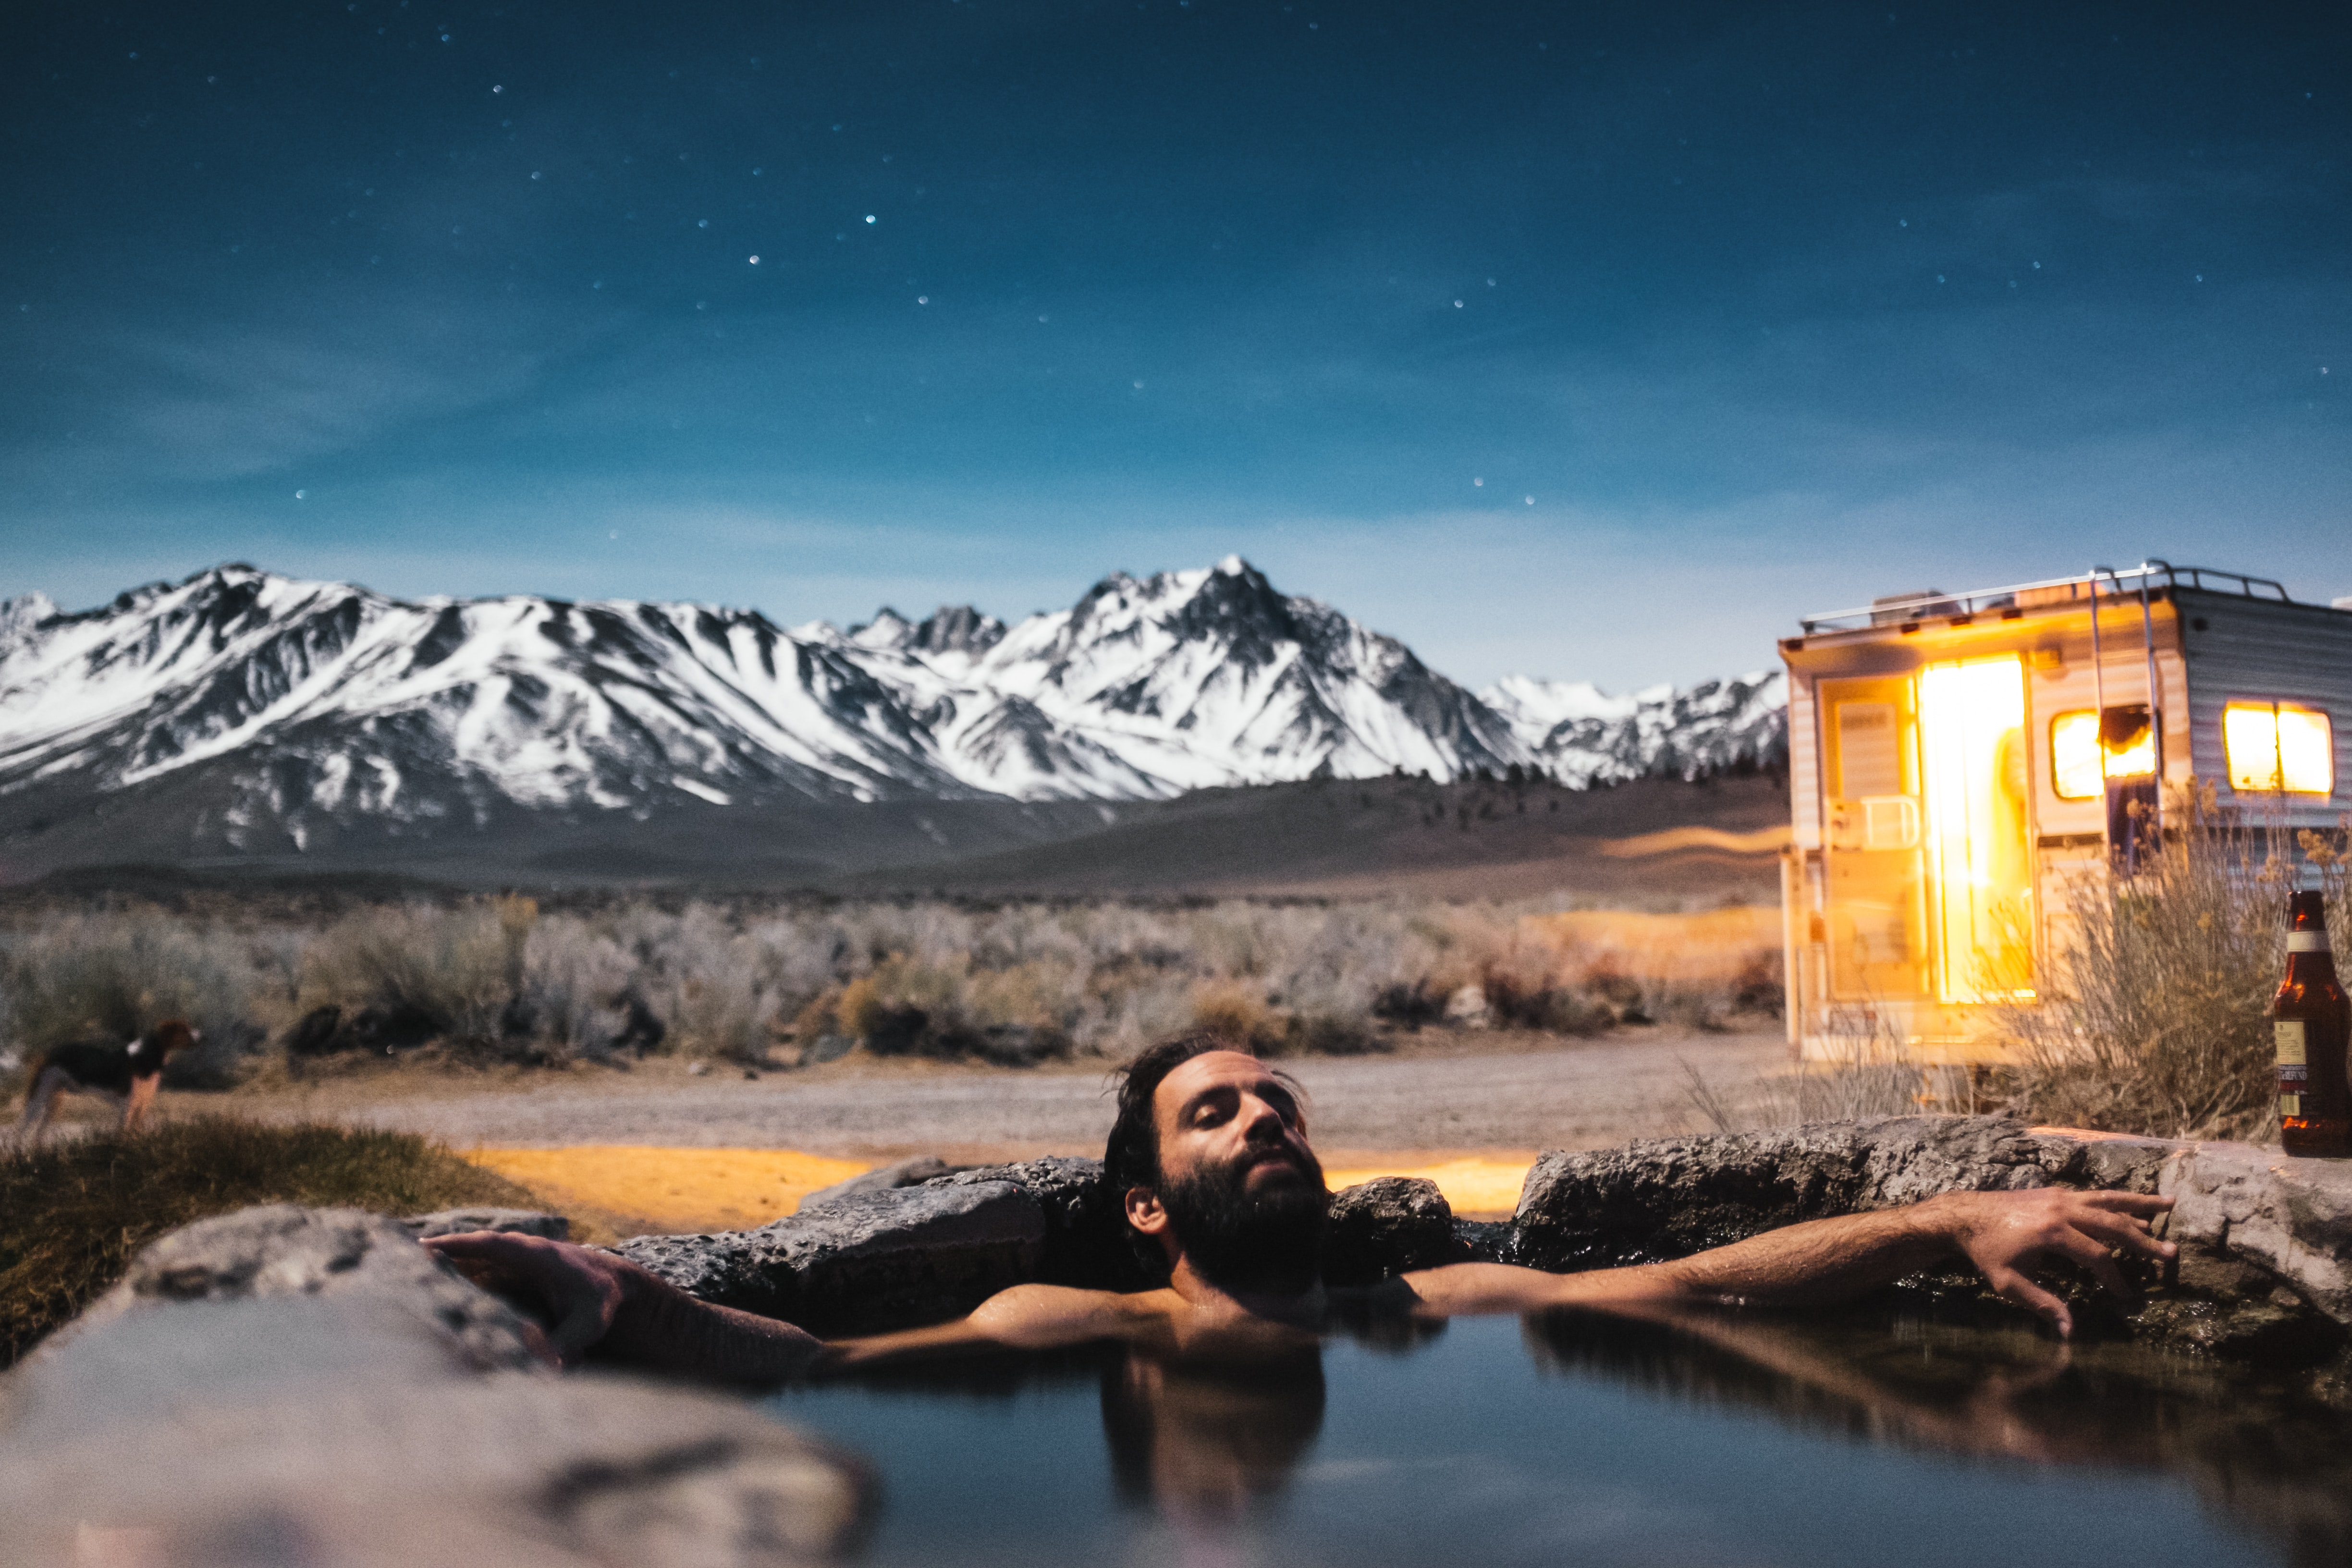 A bearded man relaxing in hot water near an RV with a snow-capped mountain range on the horizon